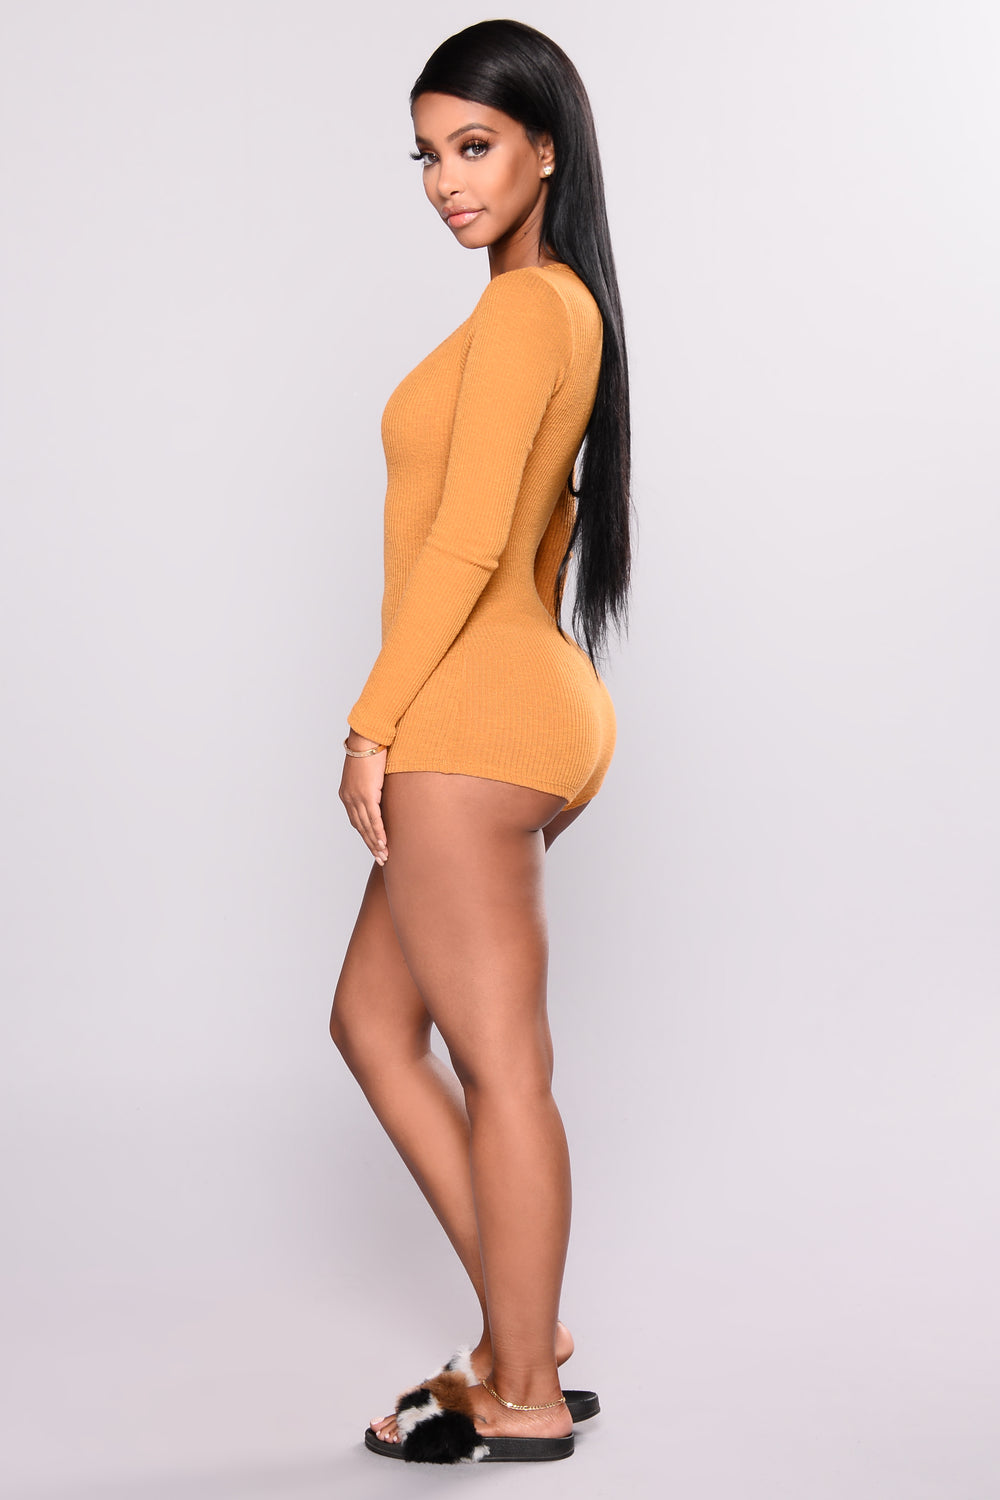 Up All Night Romper - Mustard